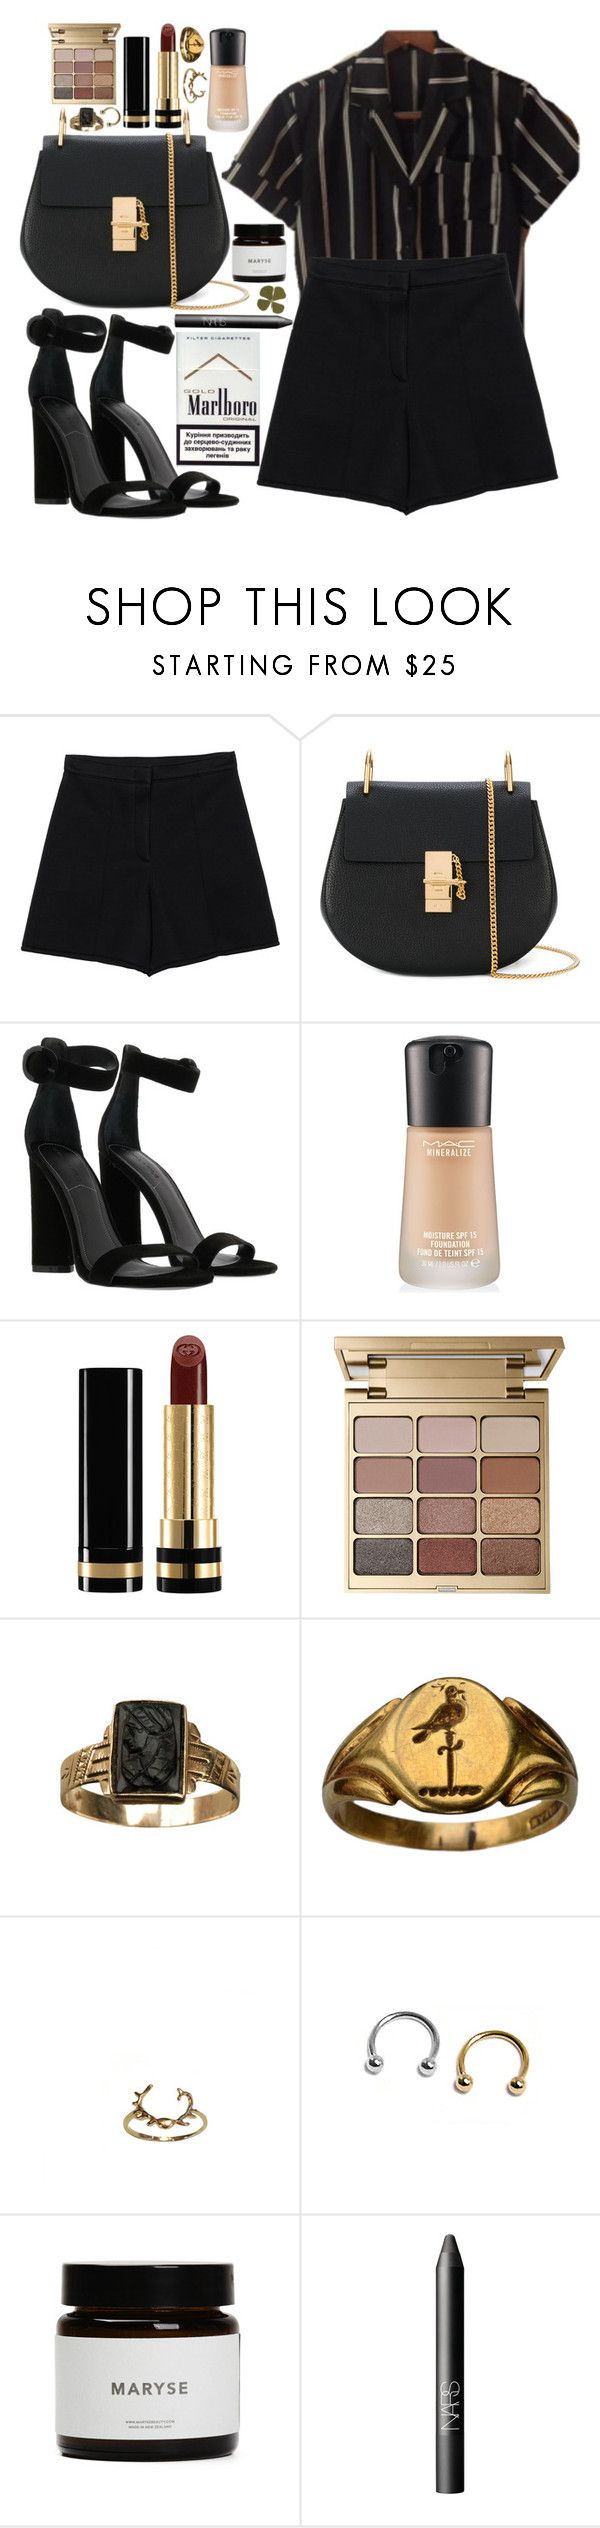 """lucky girl"" by velvet-ears ❤ liked on Polyvore featuring Sonia by Sonia Rykiel, Chloé, Kendall + Kylie, MAC Cosmetics, Gucci, Stila, Cameo and NARS Cosmetics"